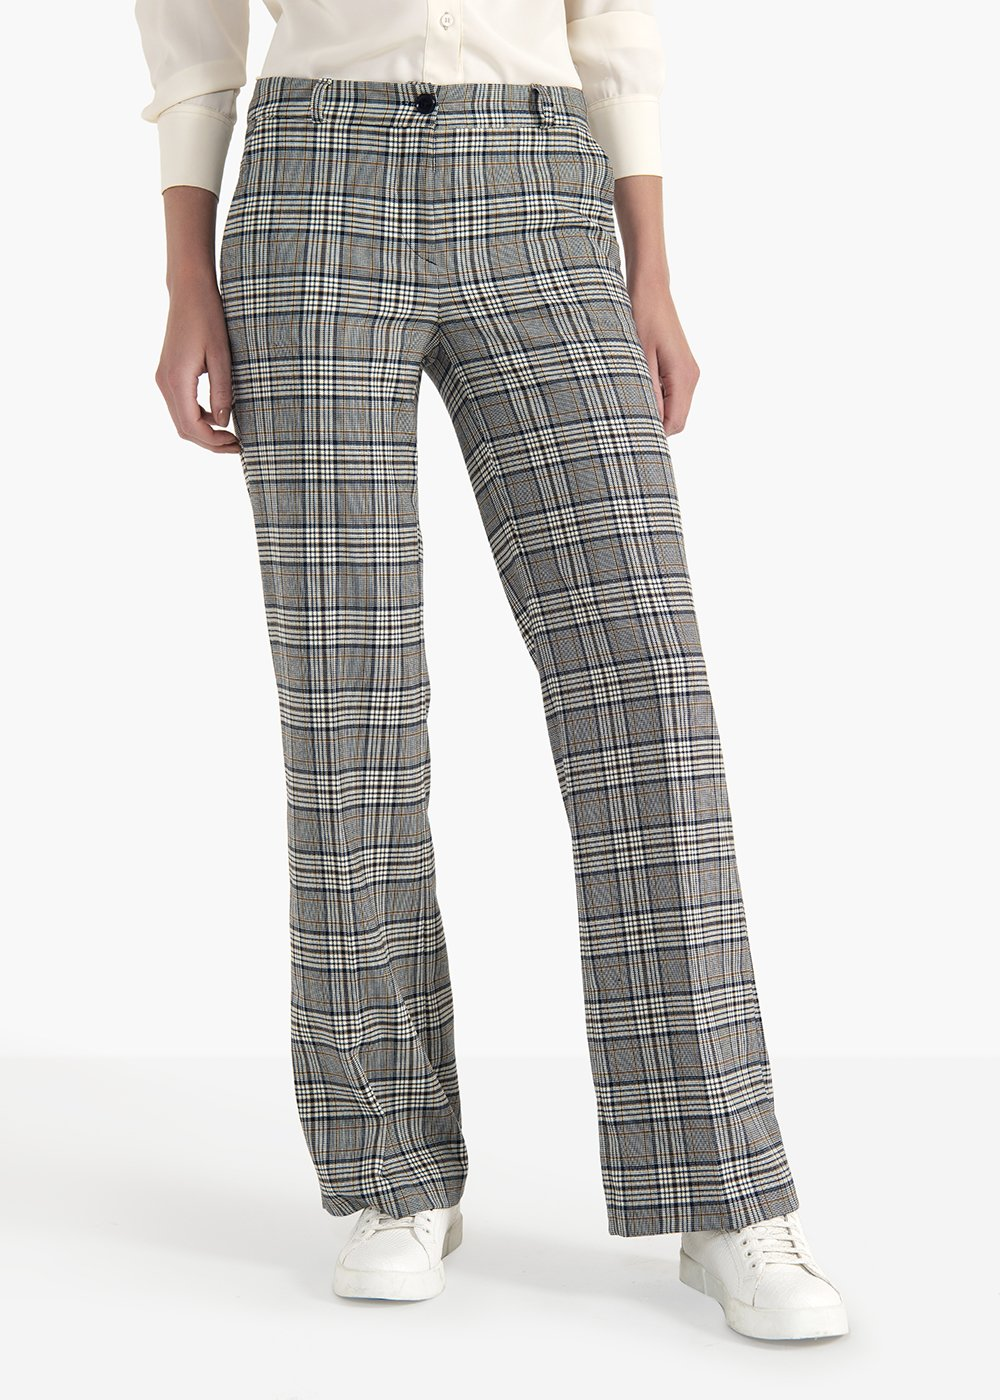 Pantaloni Clair modello Ashley in poliviscosa fantasia check - Grezzo /  Blue Fantasia - Donna